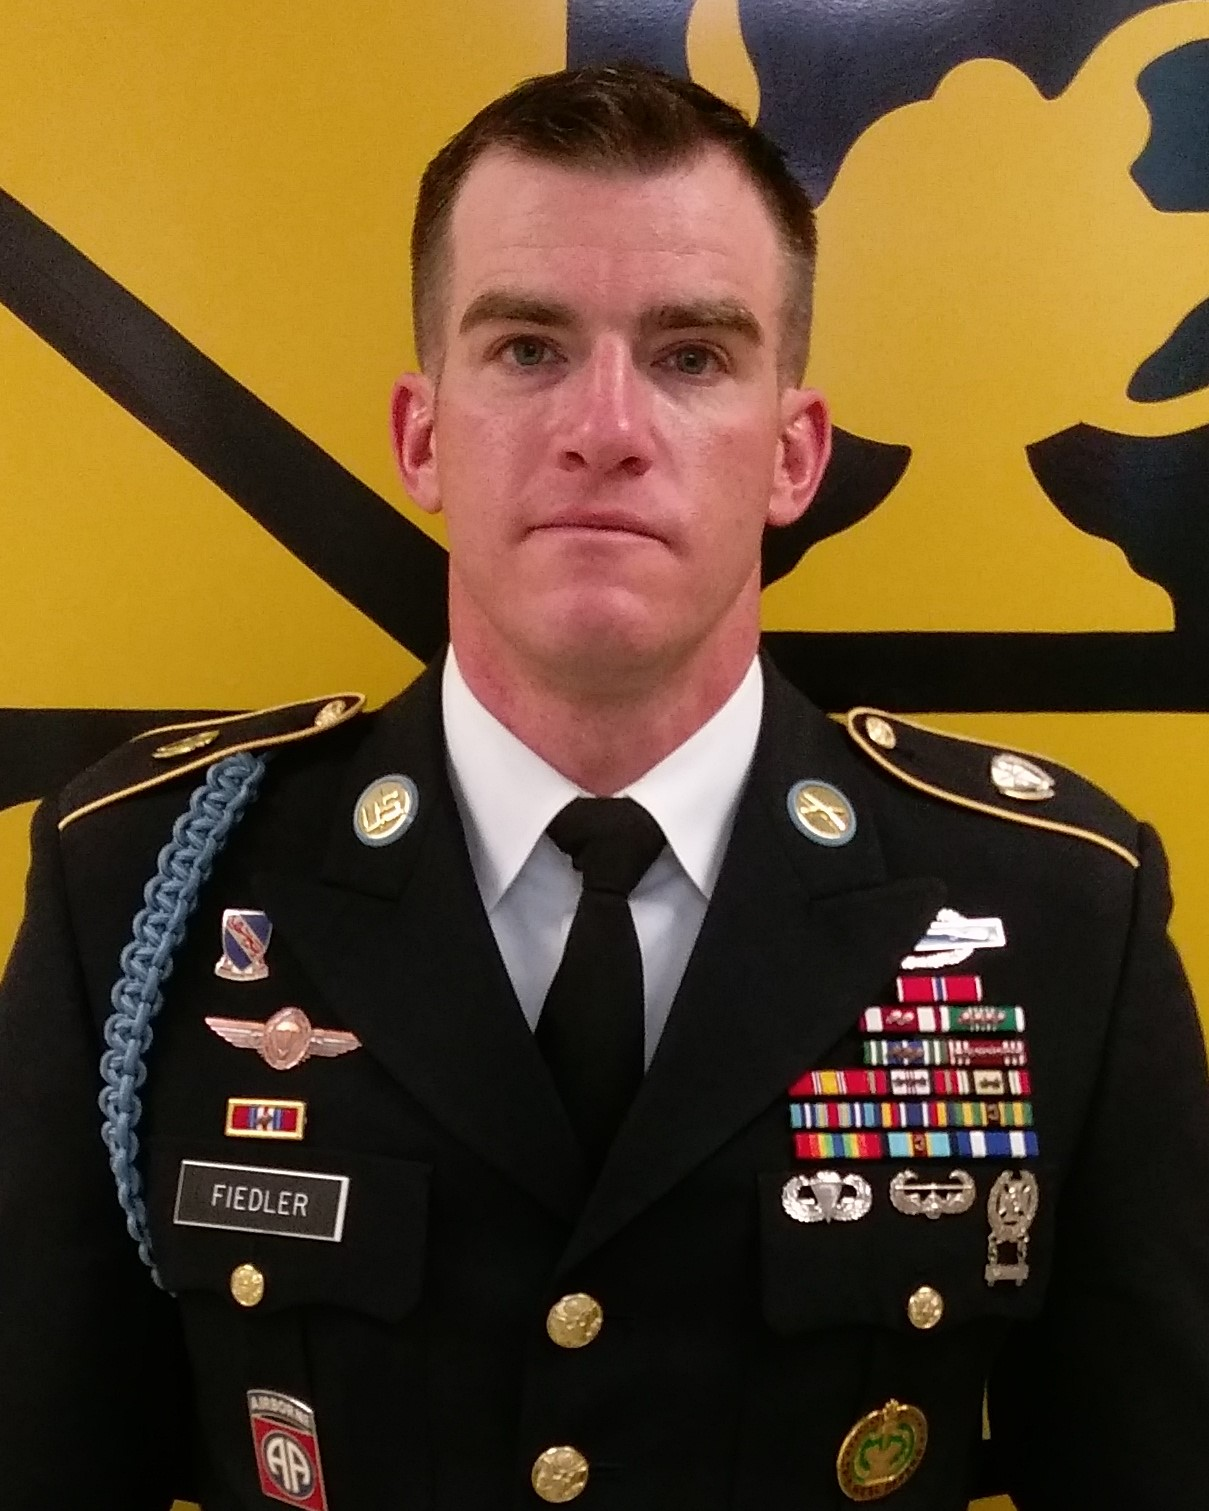 SFC Fiedler, Military Science Instructor, Military Science II